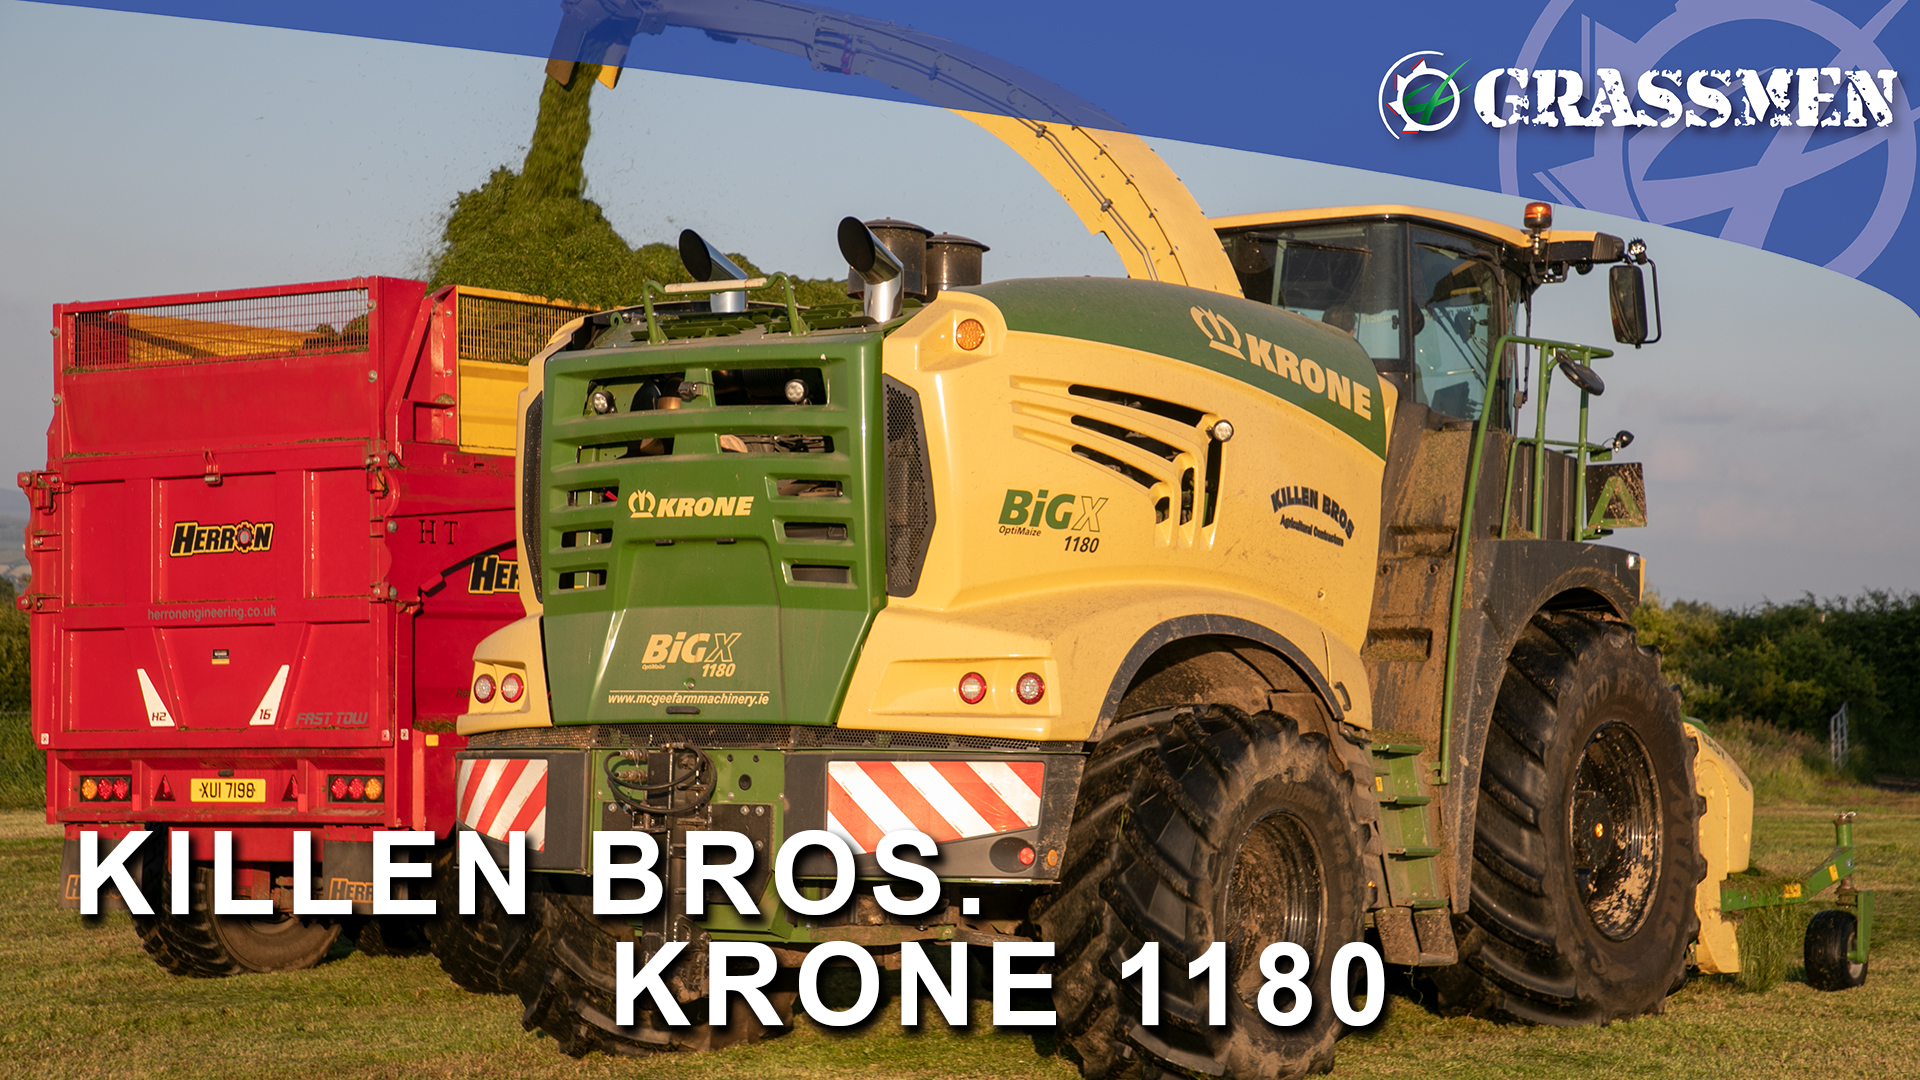 KILLEN BROS CONTRACTING SECOND CUT WITH THEIR MIGHTY KRONE 1180!